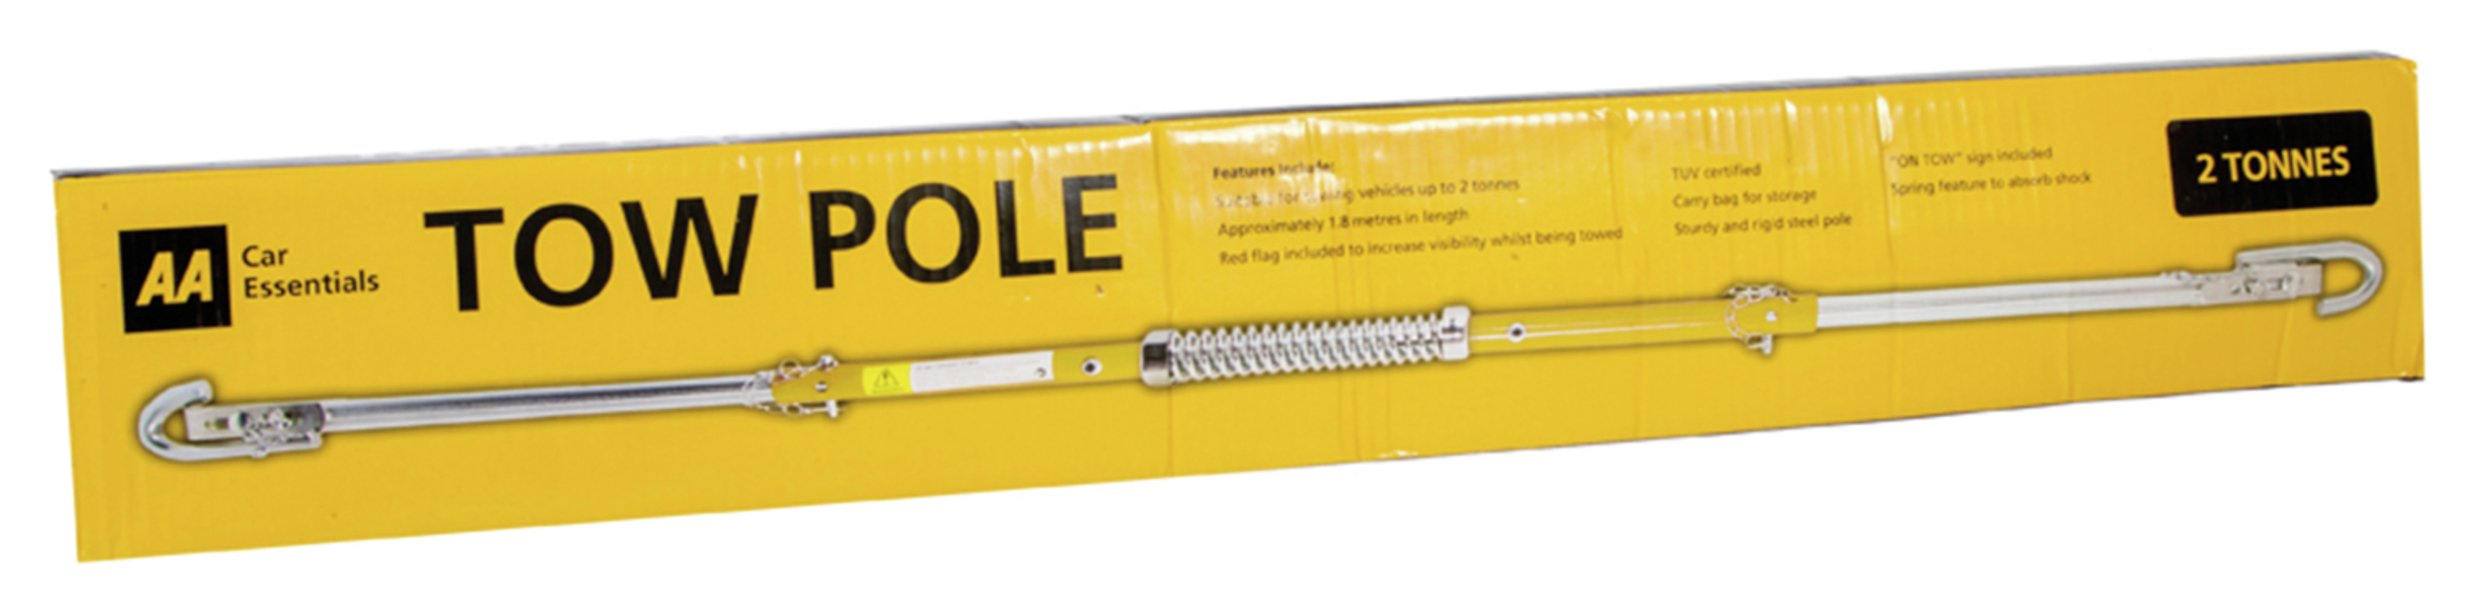 Image of AA 1.8m Tow Pole - 2 Tonnes